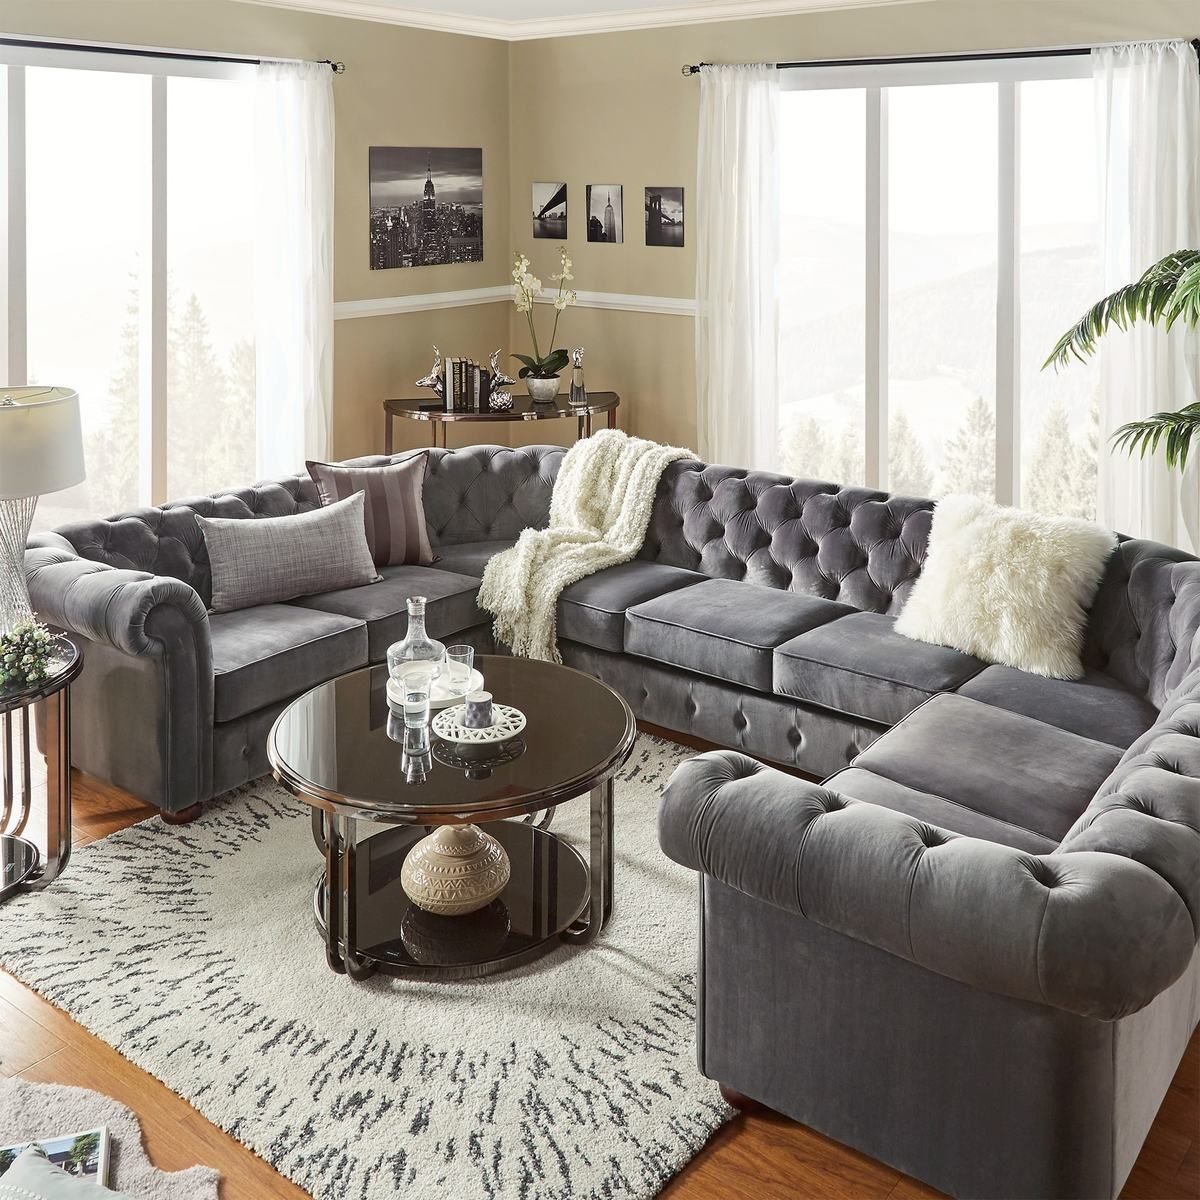 This Piece Is Designed In A U Shape Which Will Provide Enough Seating For All Your Family Members And Is Co U Shaped Sectional U Shaped Sofa Living Room Pieces